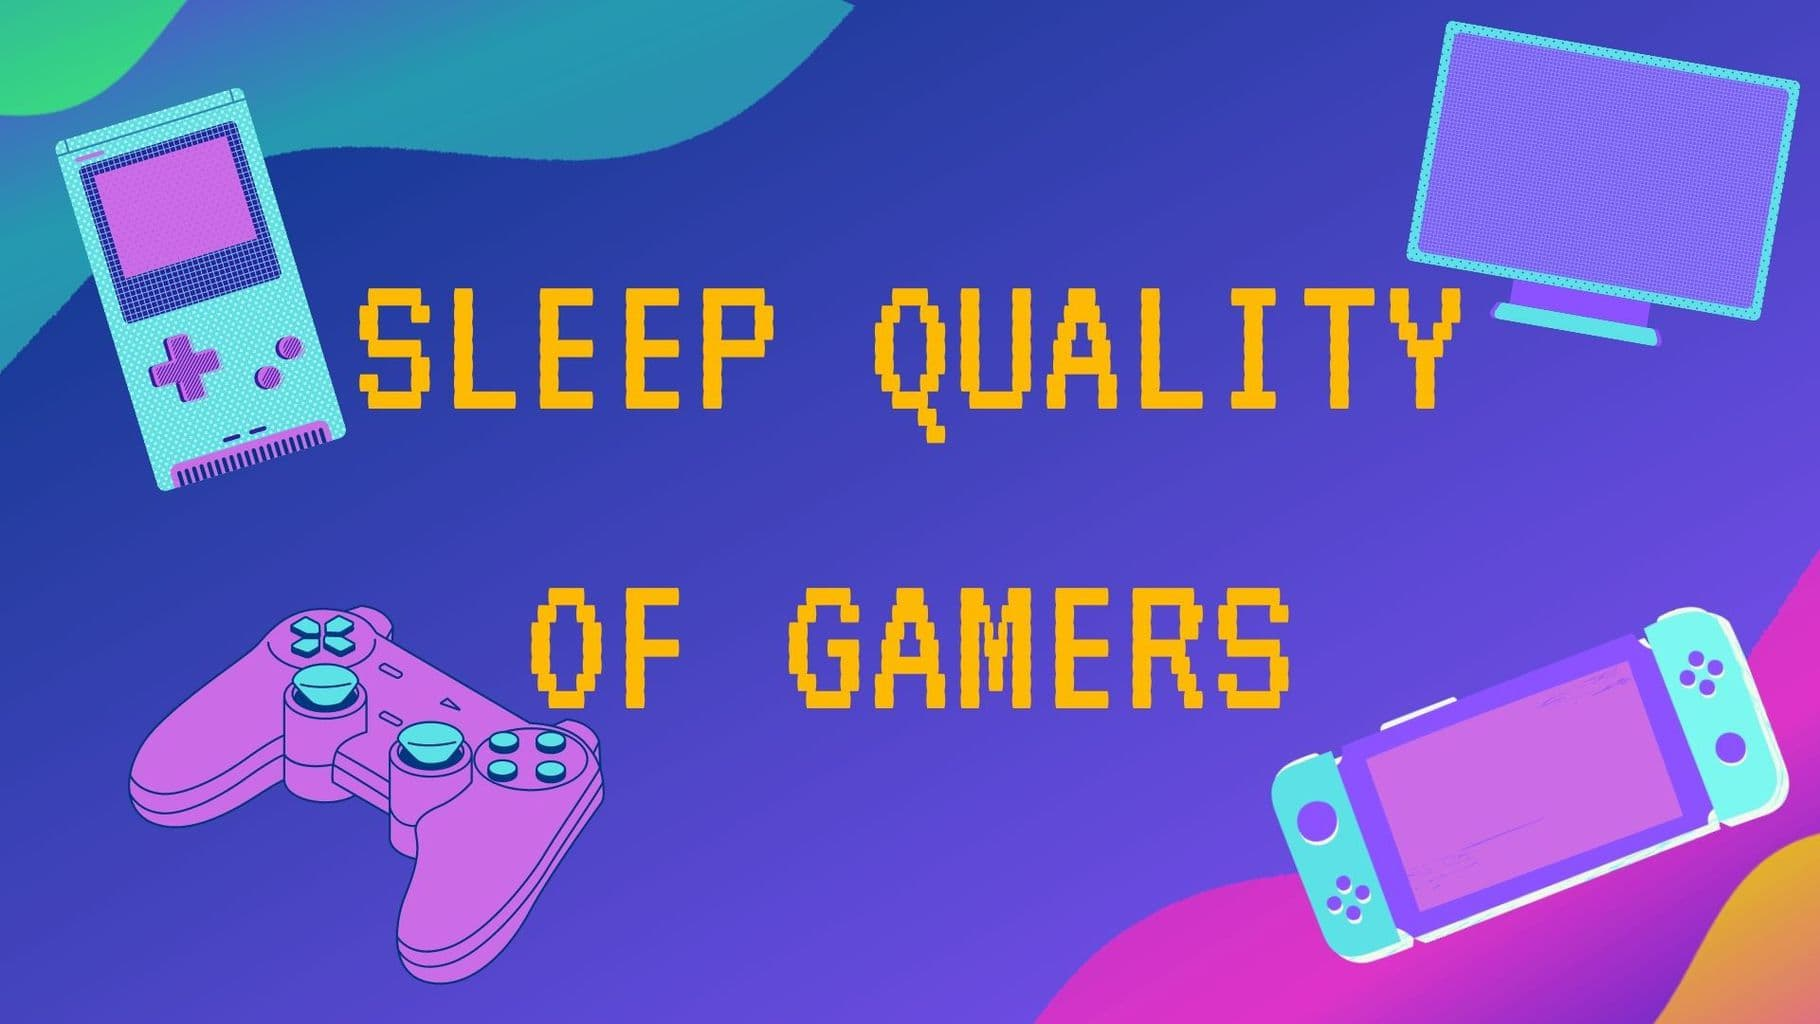 sleep quality of gamers